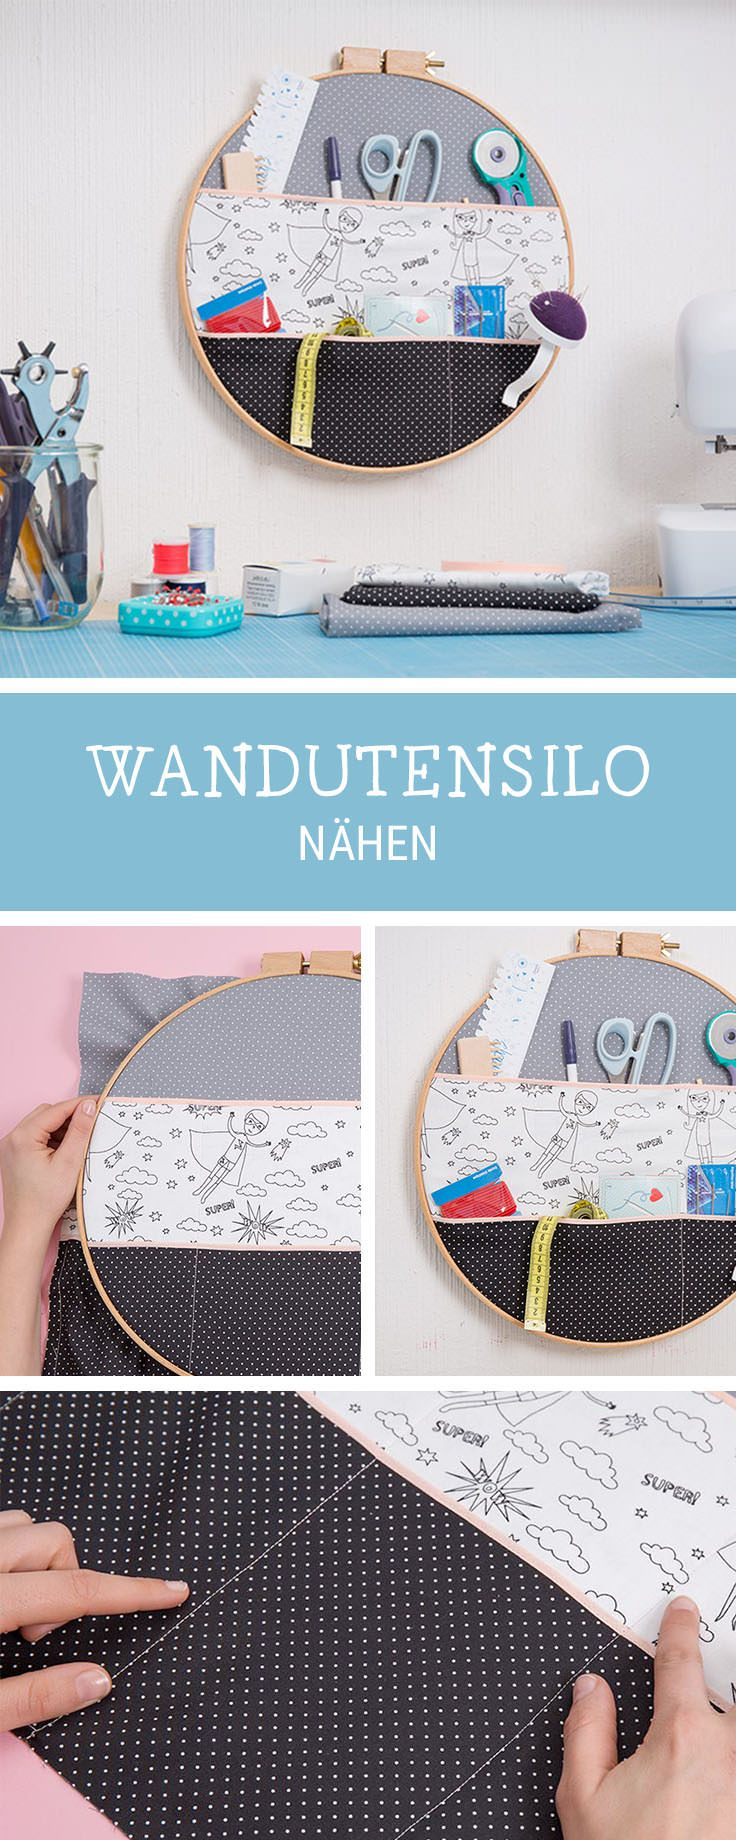 Nähanleitung für ein Utensilo: Wir zeigen Dir, wie Du aus einem Stickrahmen ein Wandutensilo machst / transform an embroidery frame into an utensilo, storage idea via DaWanda.com